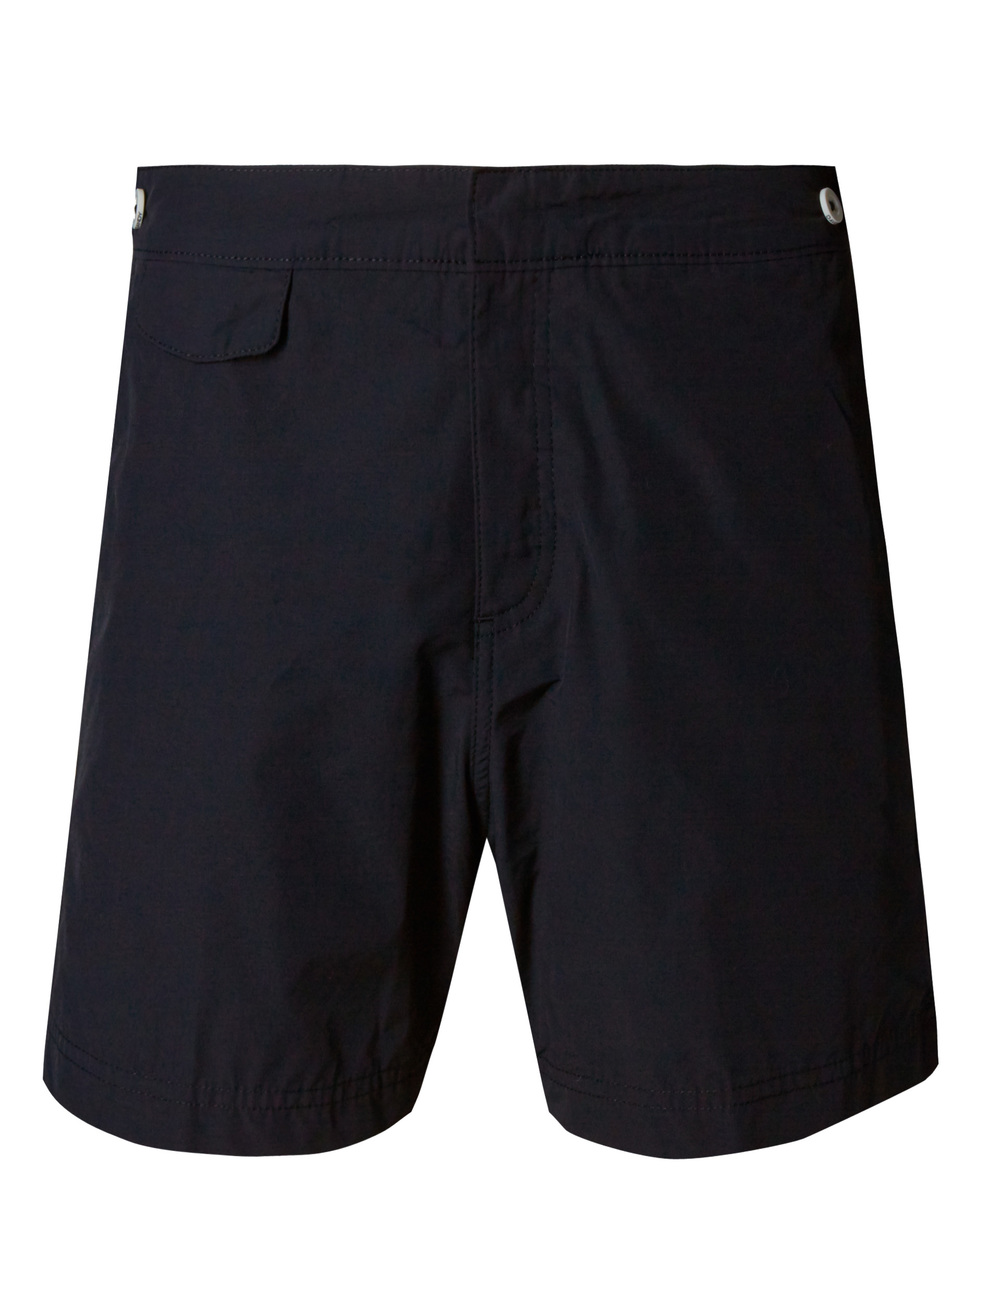 David Gandy for Autograph Tailored Fit Quick Dry Swim Shorts T28 7907A -ú29.50 Black Mid Length (ECOM only).jpg